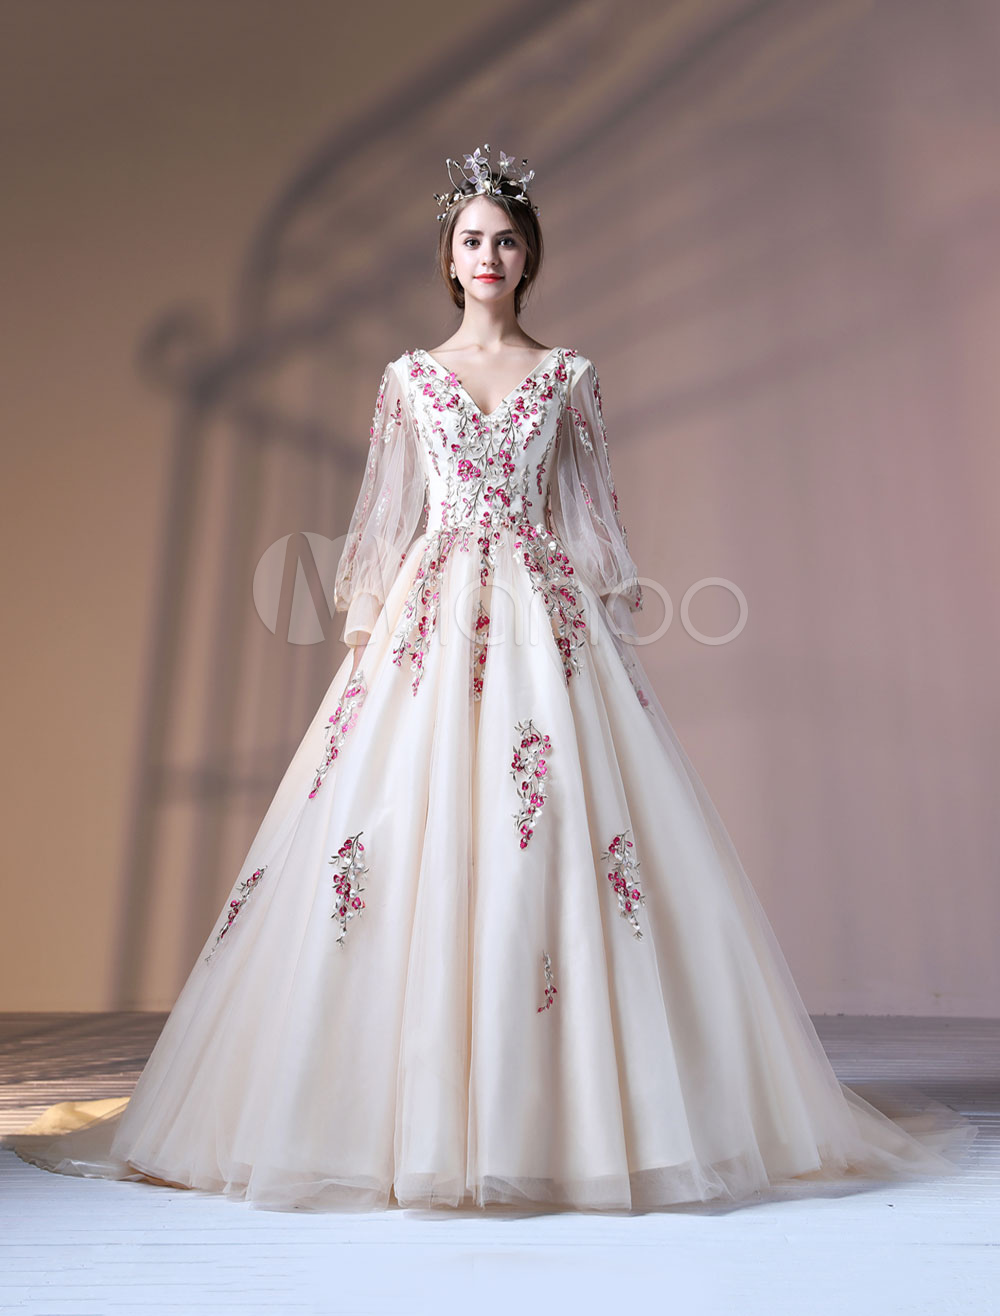 Champagne Quinceanera Dresses Luxury Embroidered Pearls Beaded Long Sleeve V Neck Princess Pageant Dresses With Train